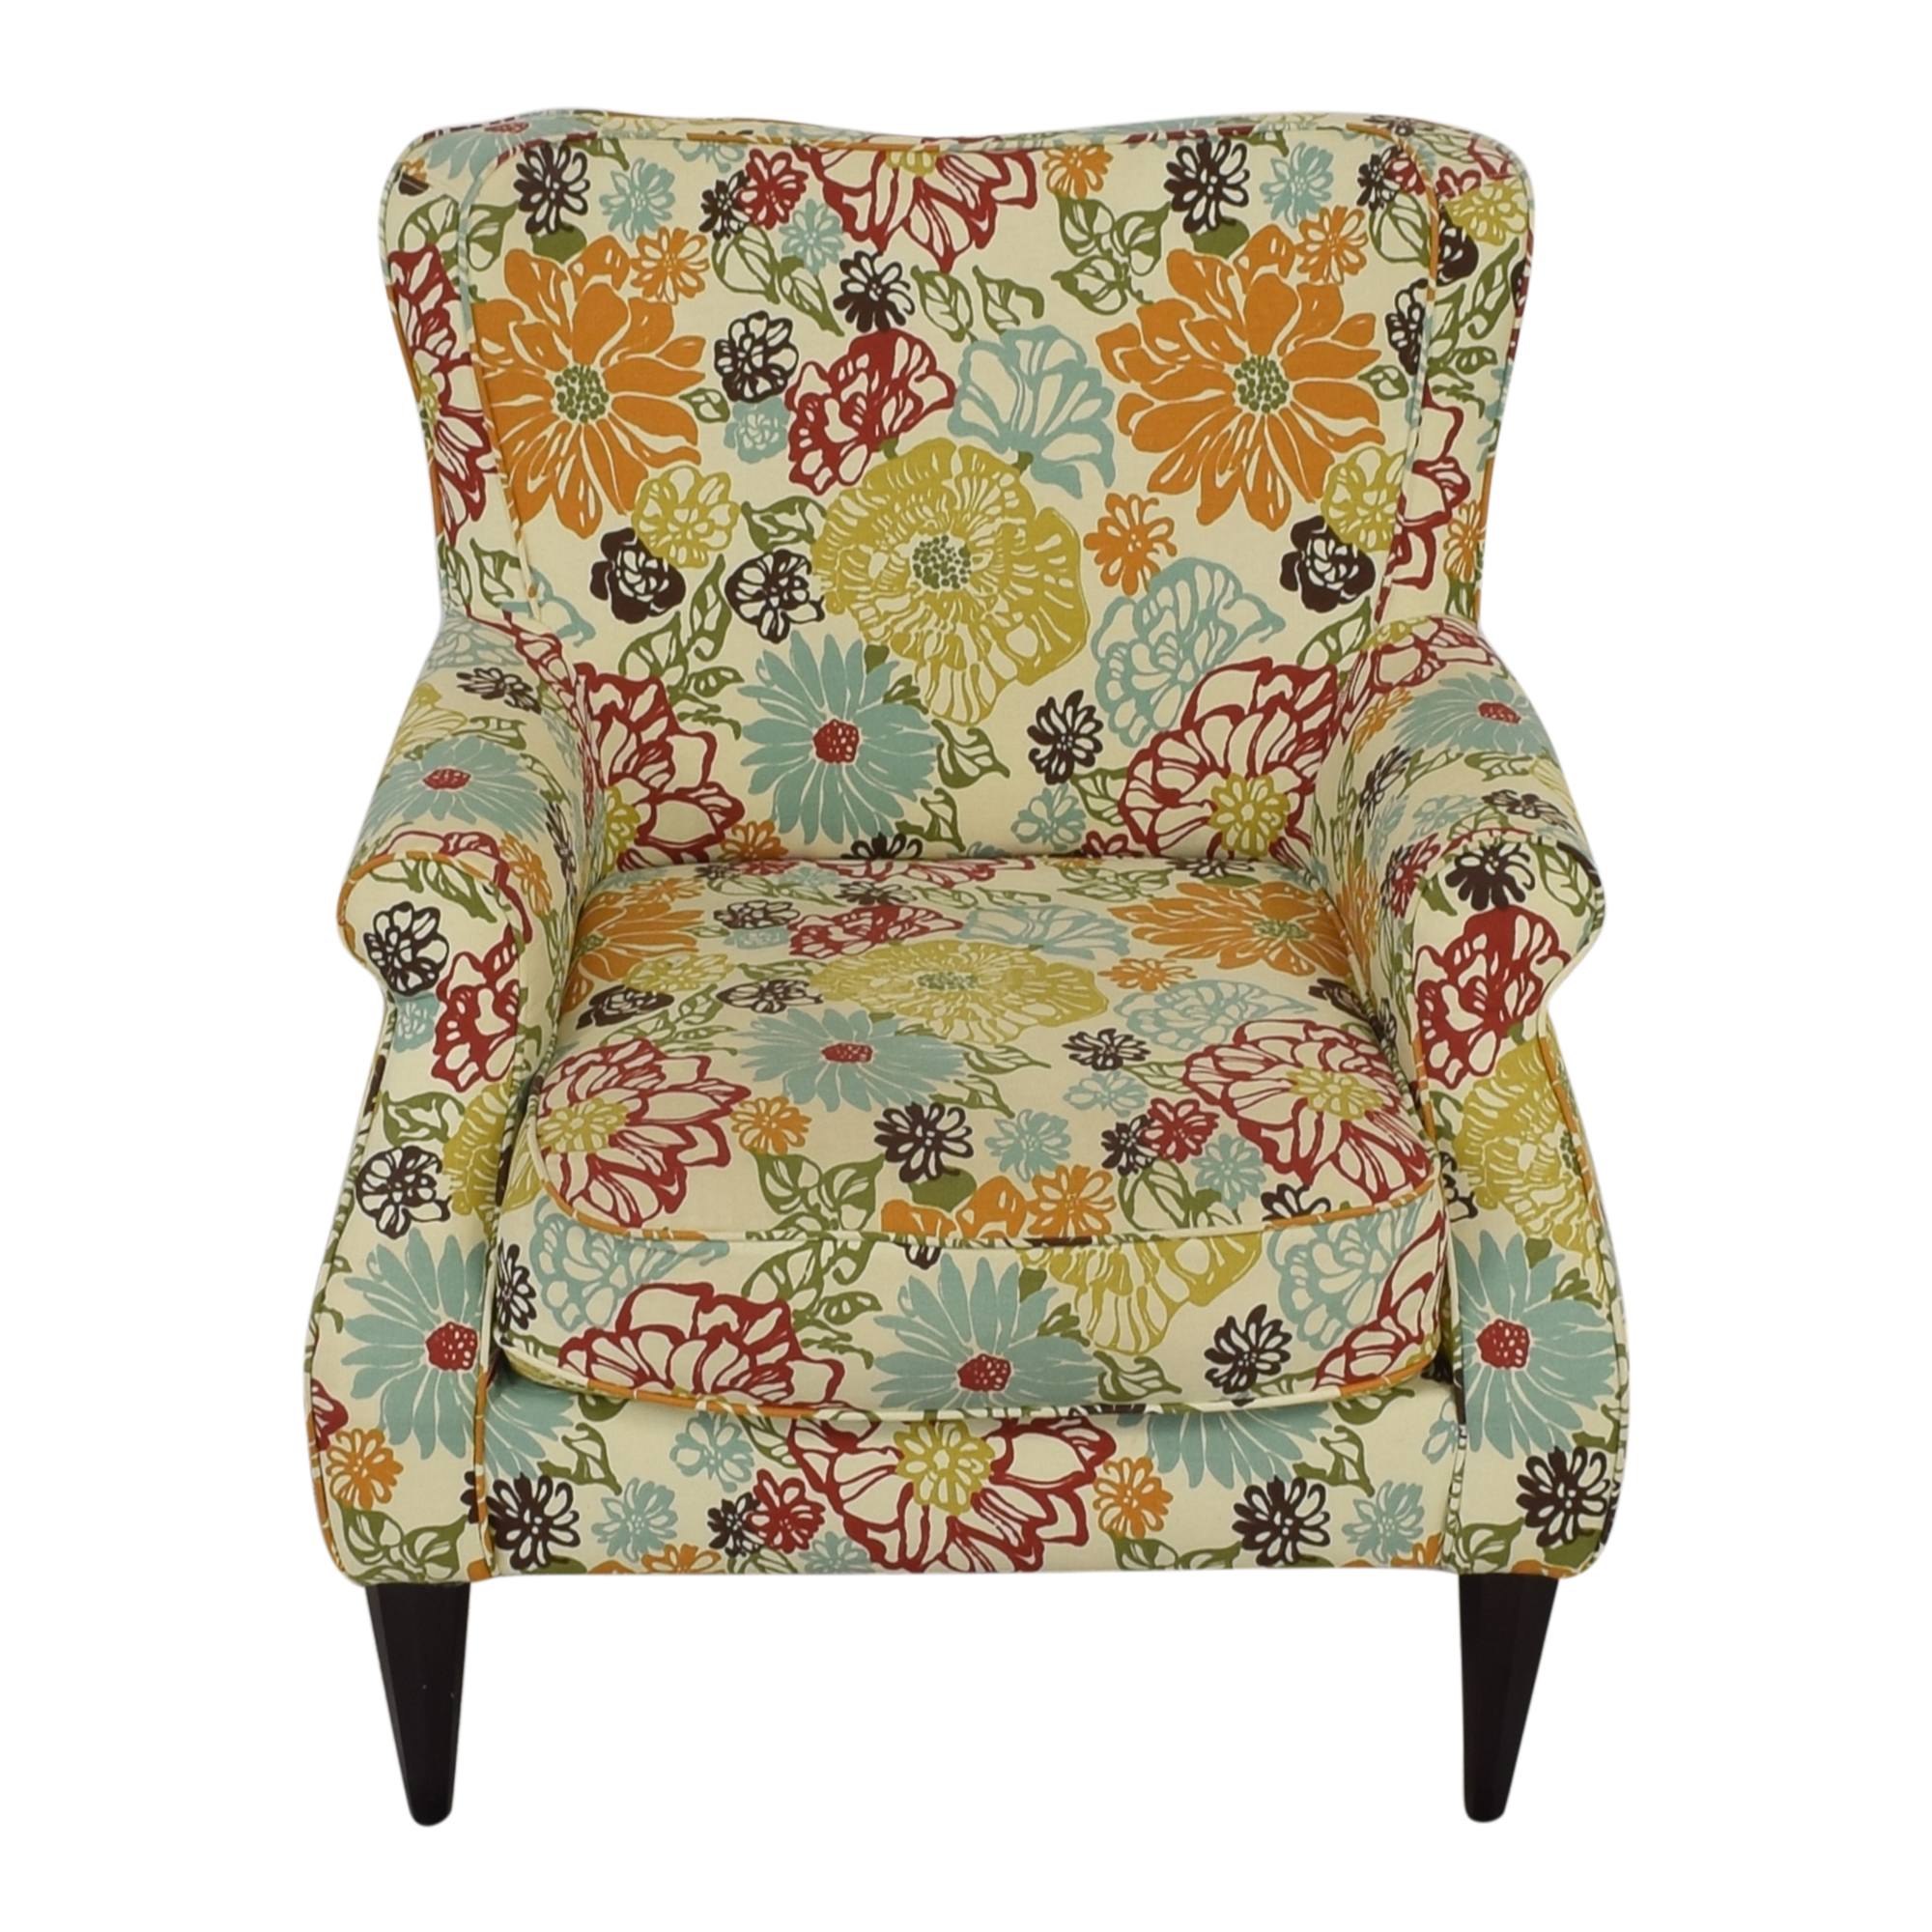 Raymour & Flanigan Raymour & Flanigan Emelen Accent Chair discount